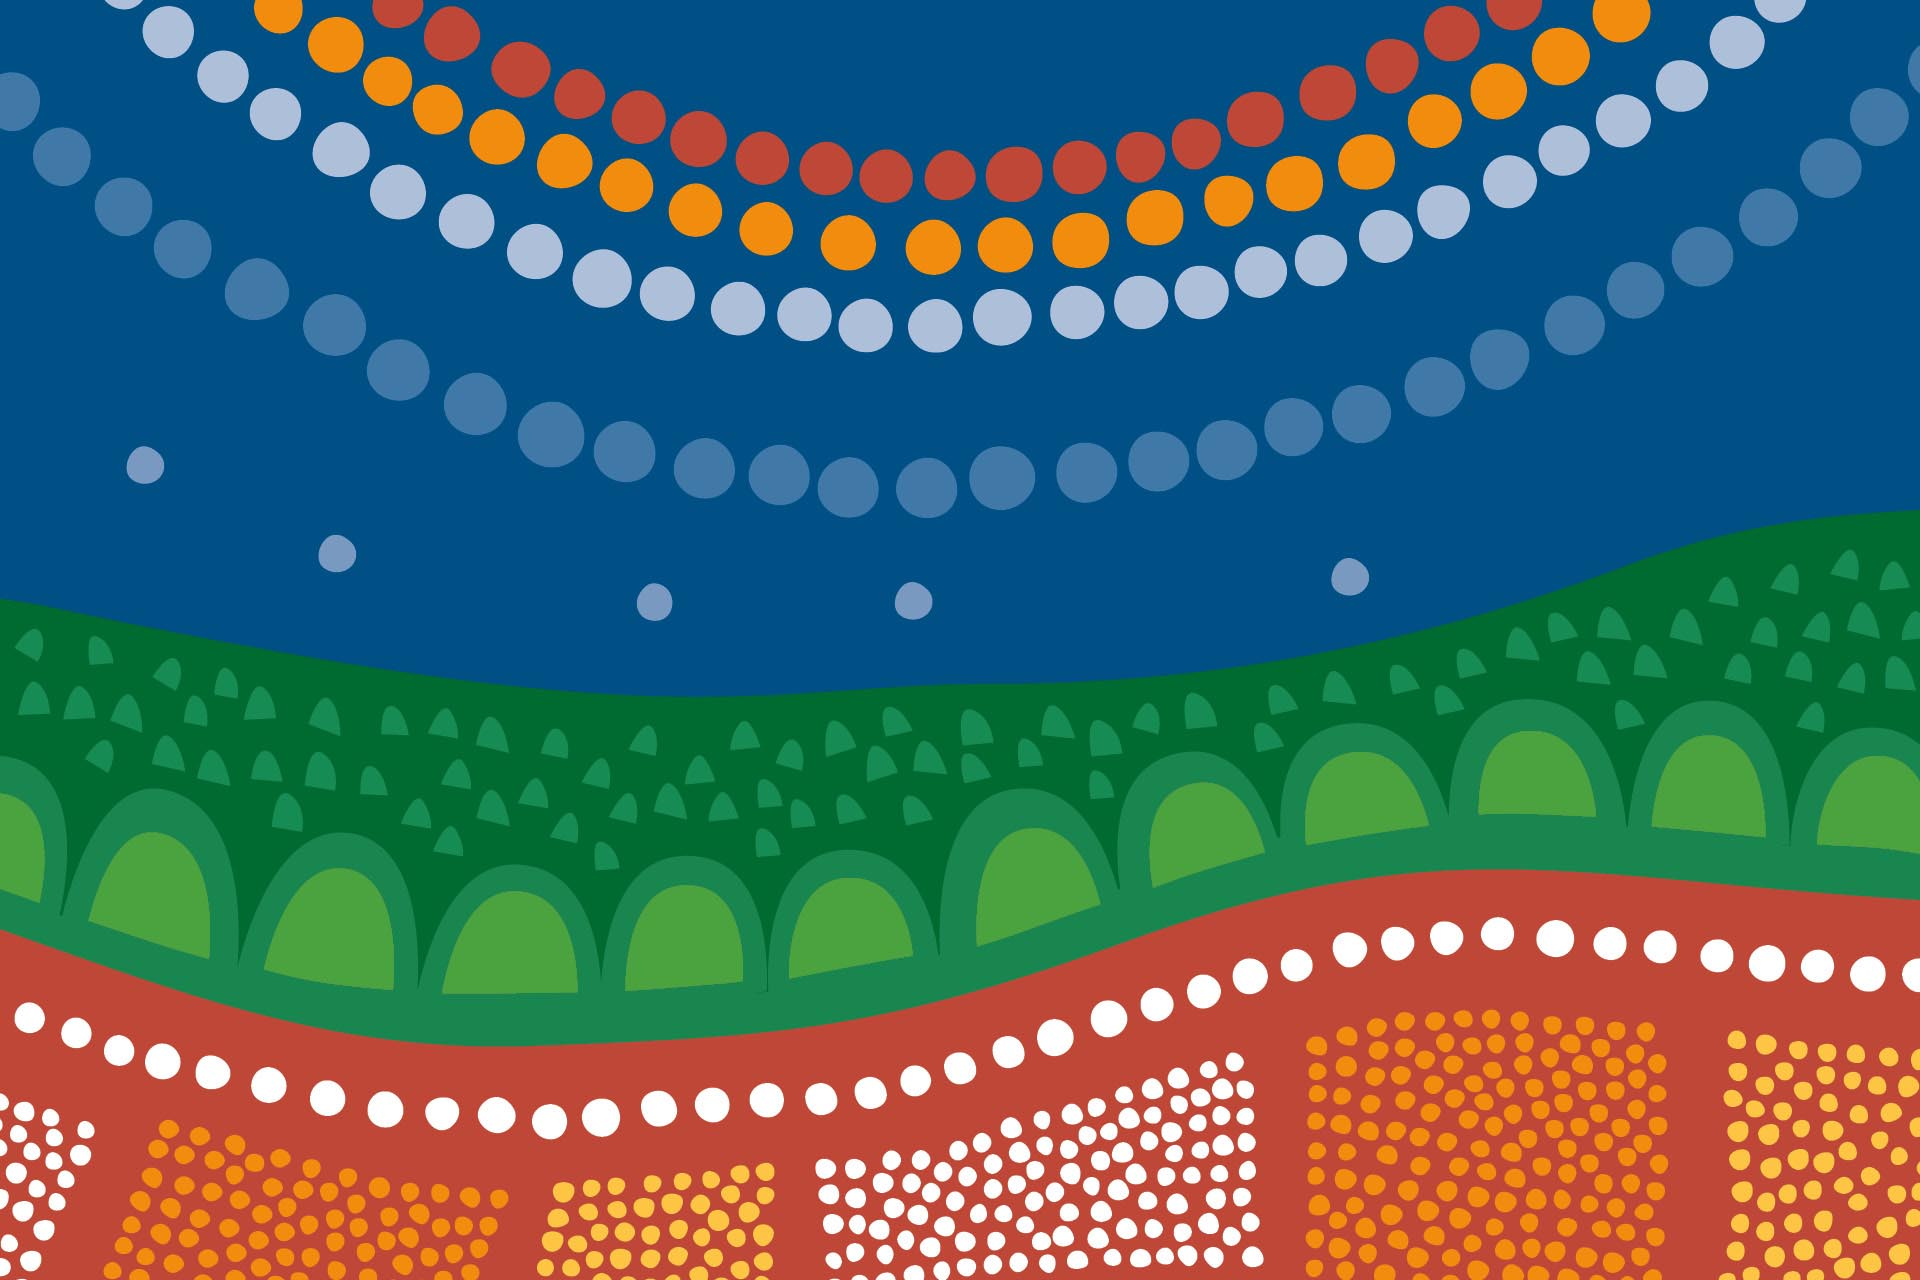 https://www.naidoc.org.au/sites/default/files/revslider/image/naidoc-poster-2019-winner.jpg